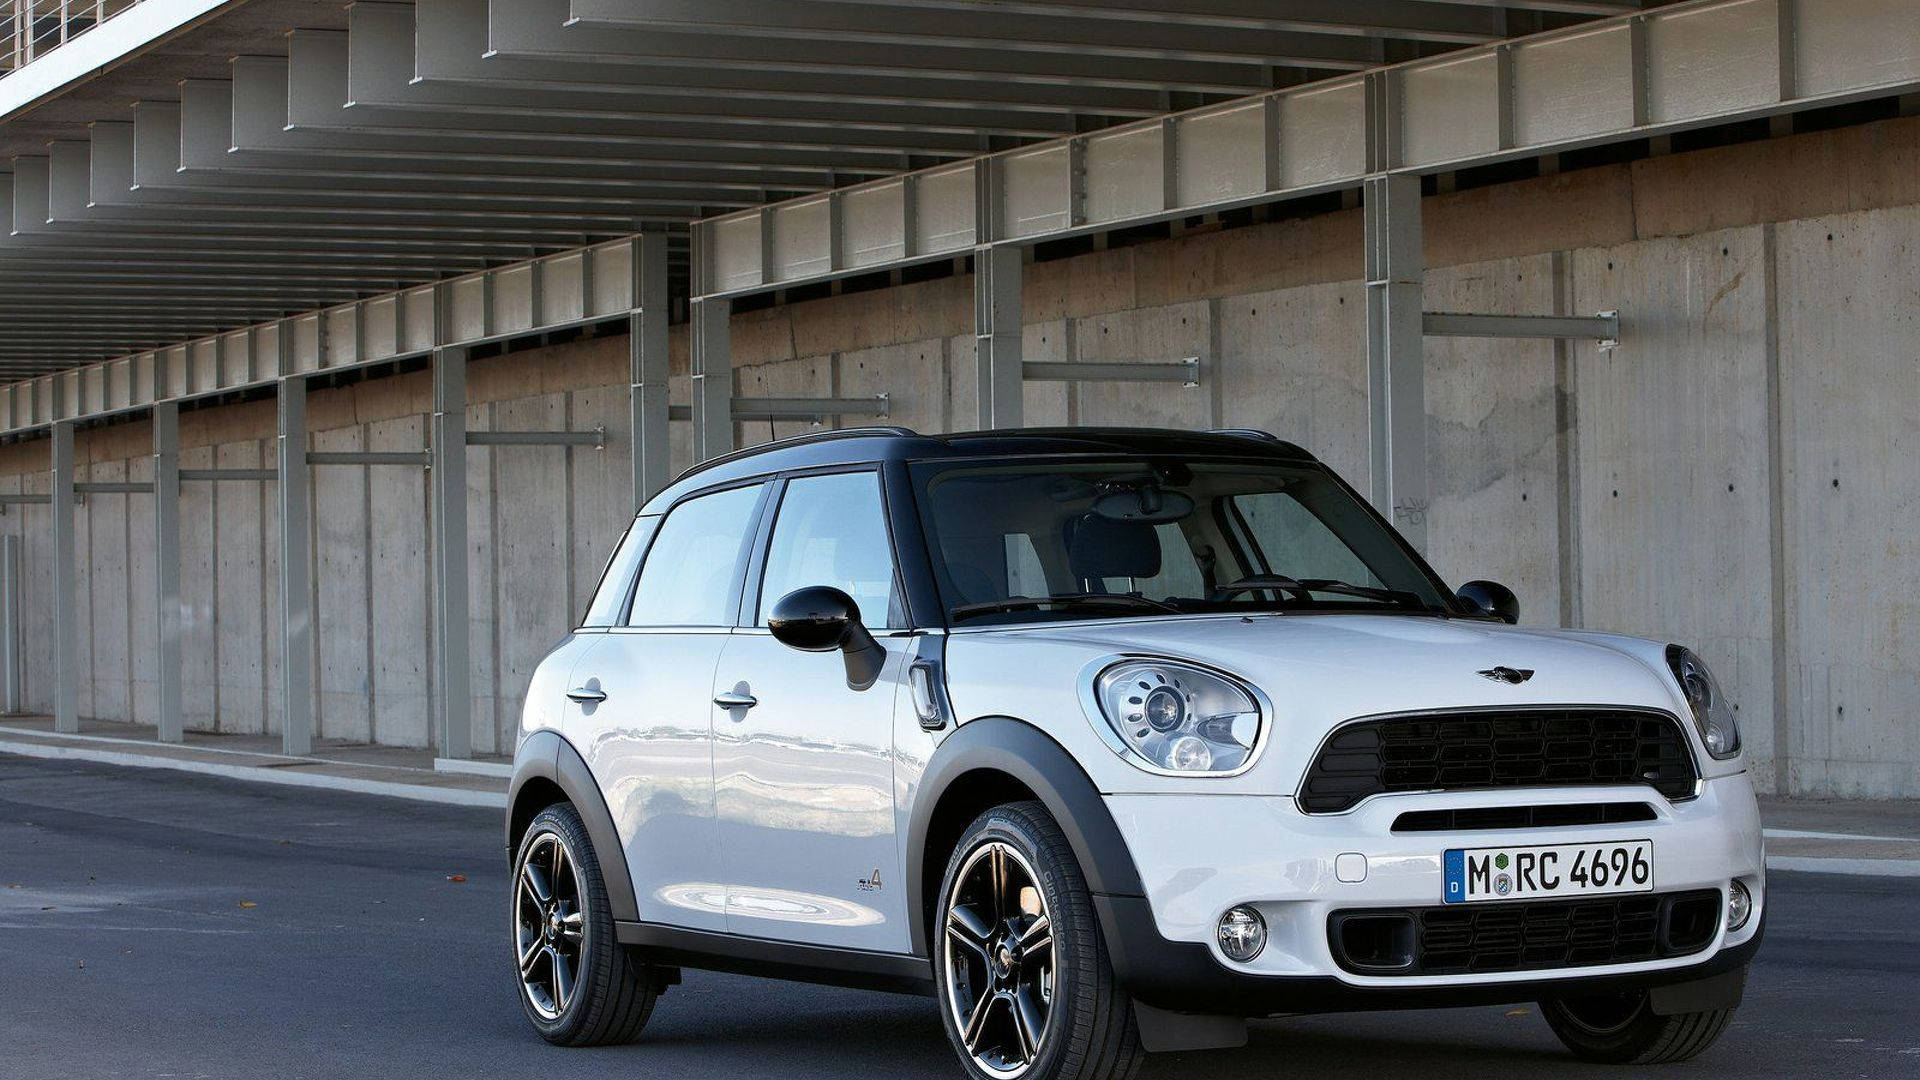 2011 MINI Countryman Official Details and Photos Released